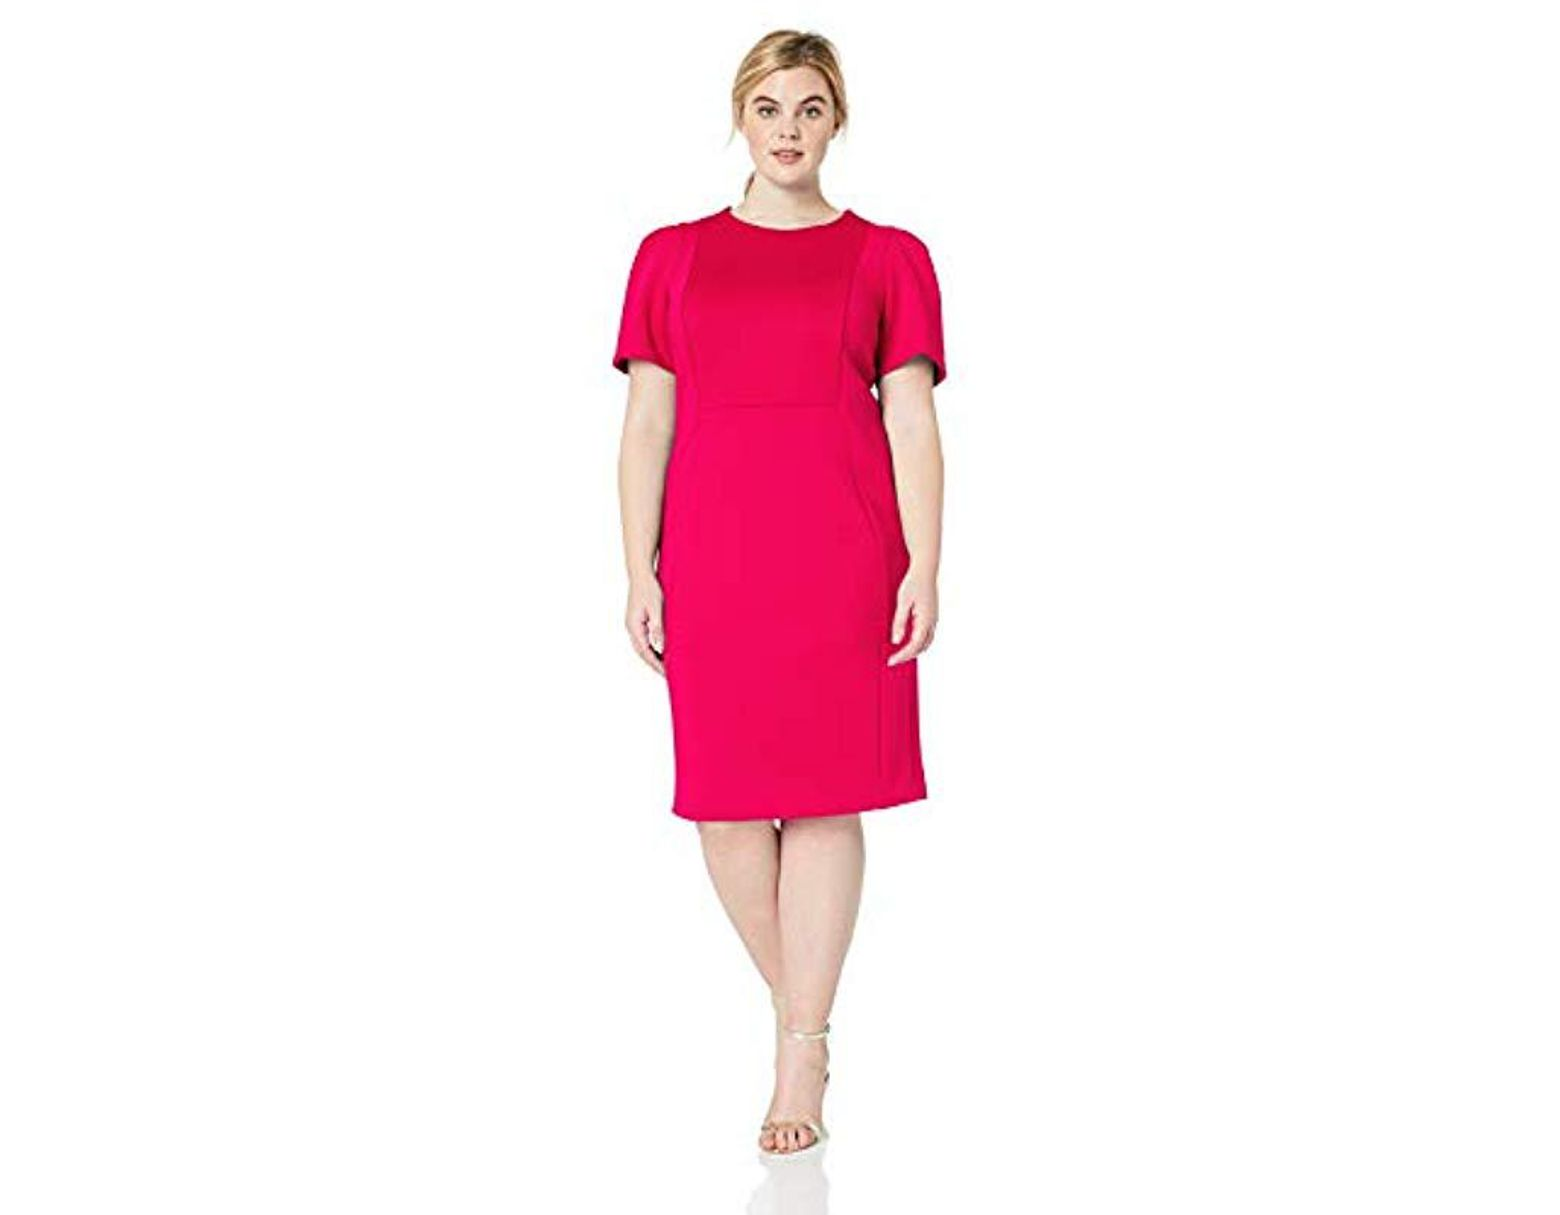 3fd37ed9 Calvin Klein Plus Size Short Sleeved Sheath With Princess Seams Dress in  Pink - Save 5% - Lyst